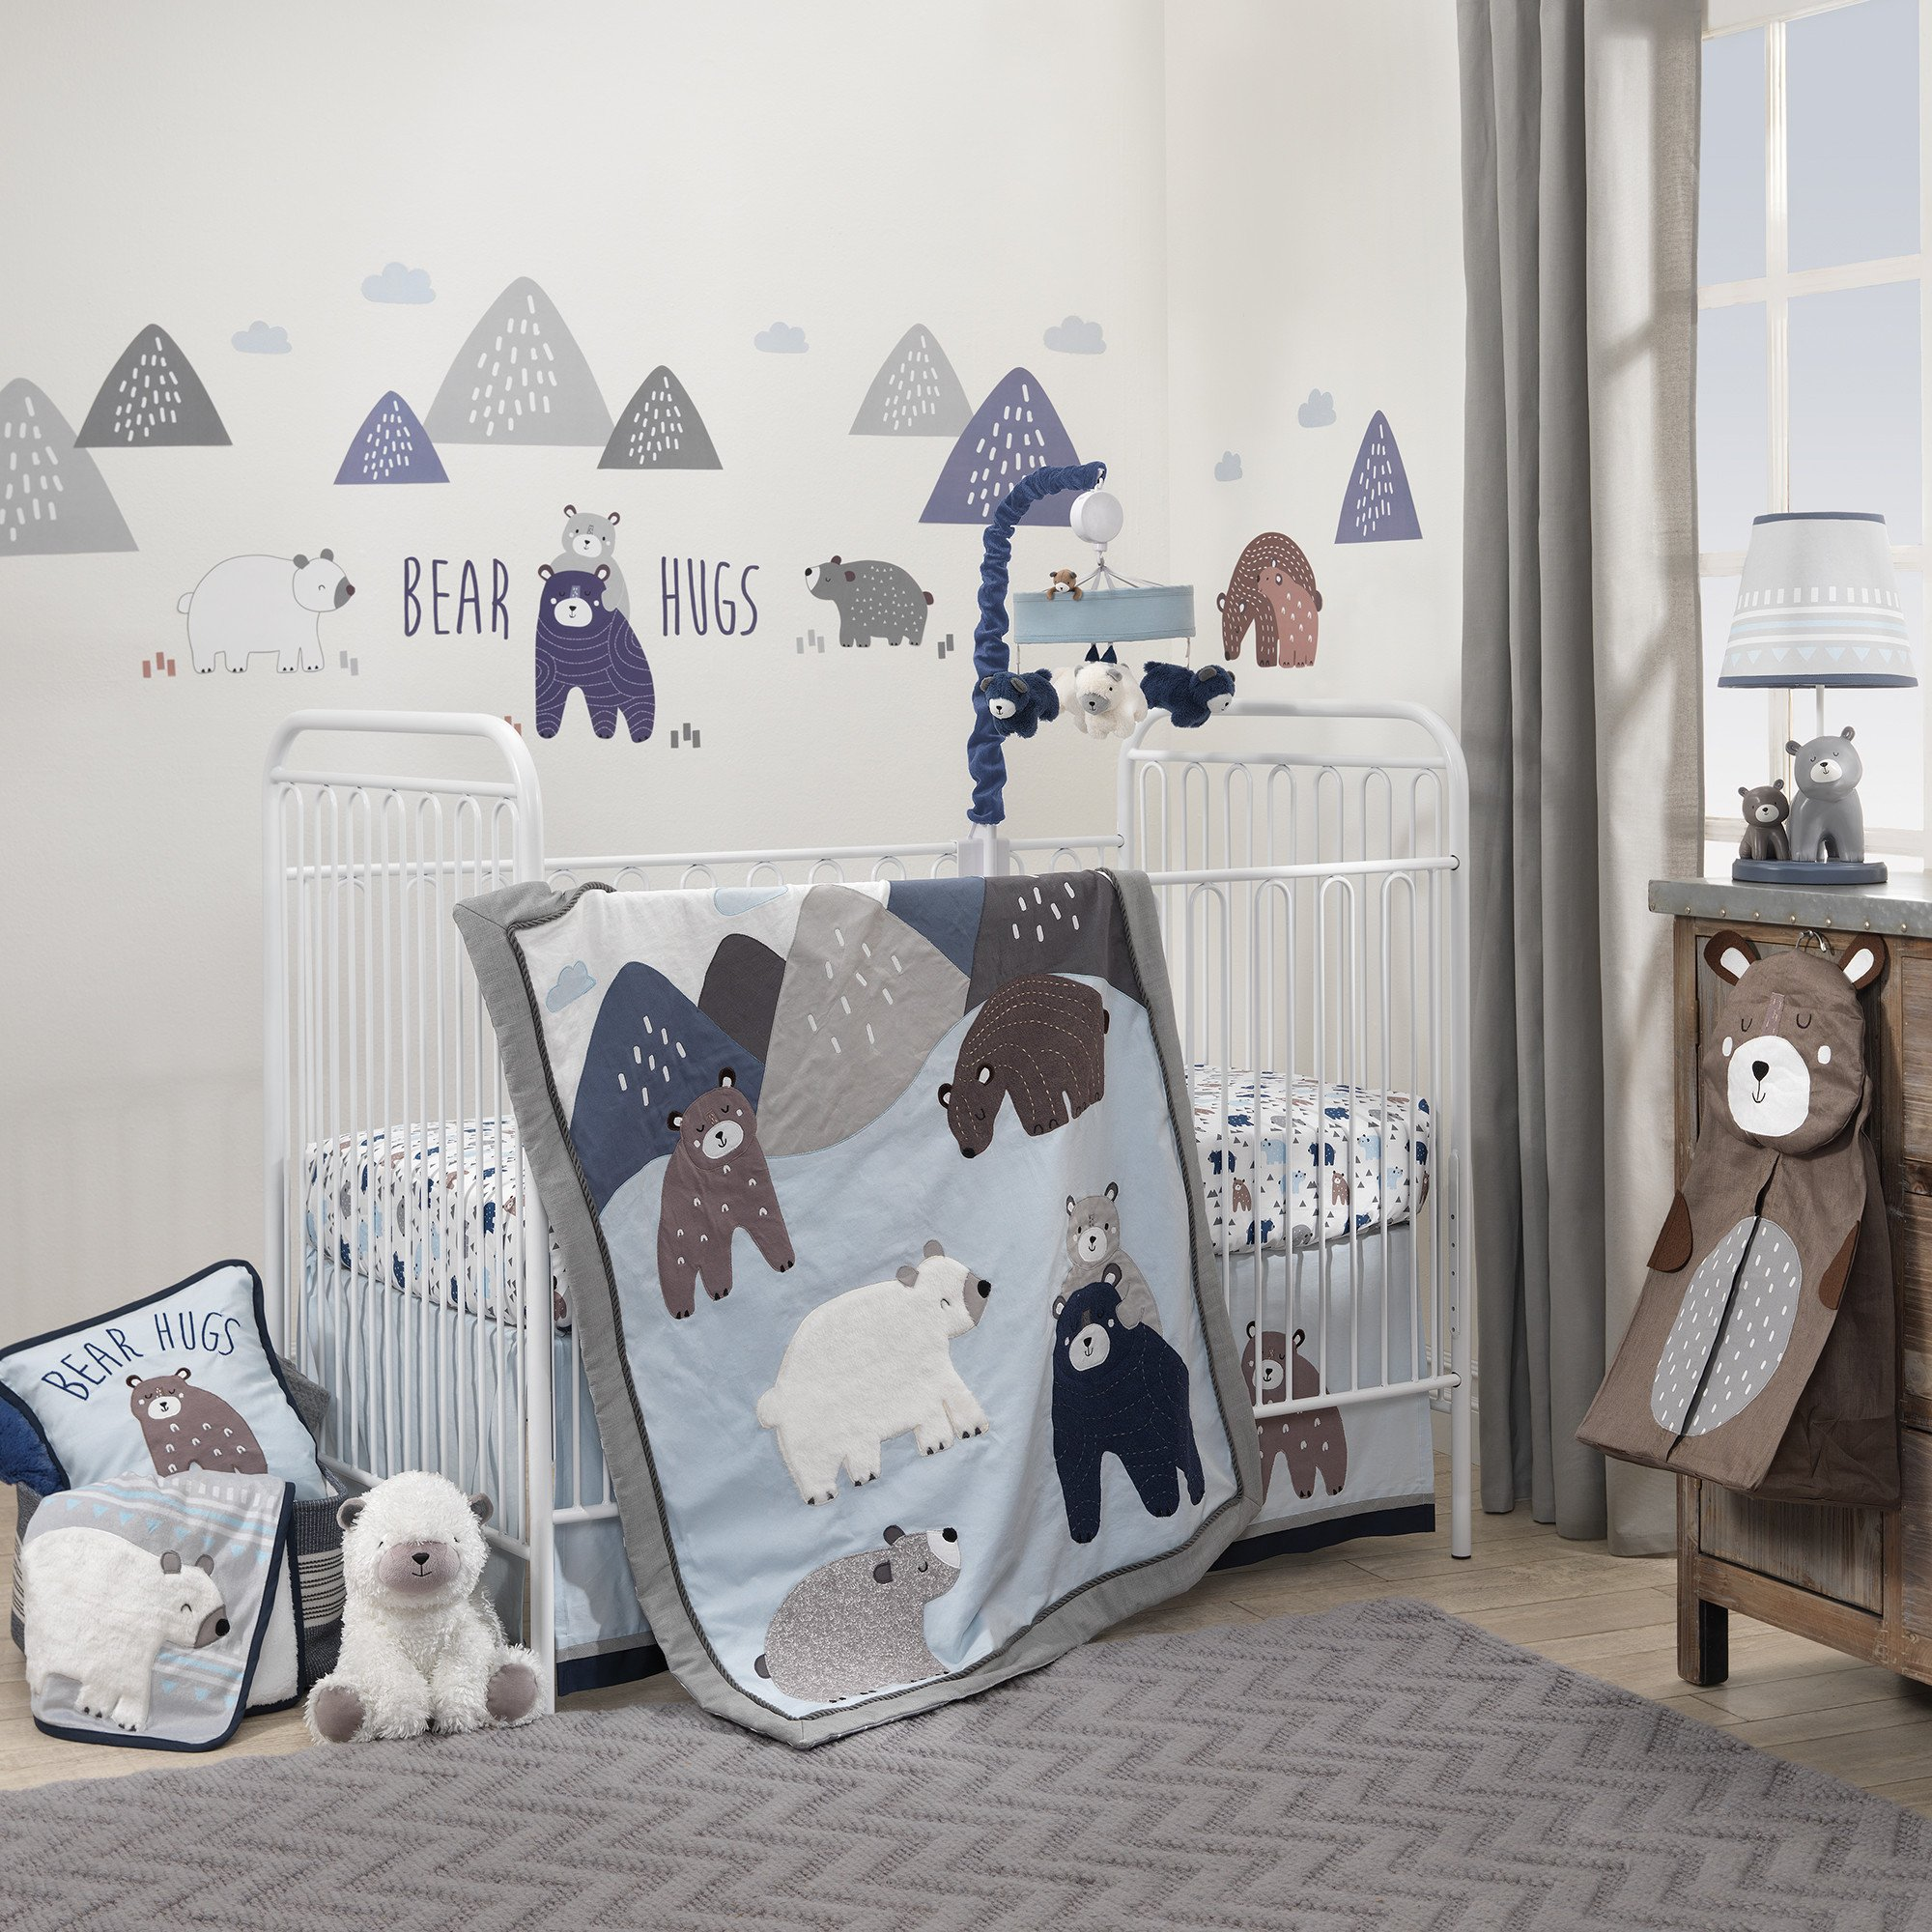 Lambs & Ivy Signature Montana 4-Piece Crib Bedding Set - Blue, Gray, White